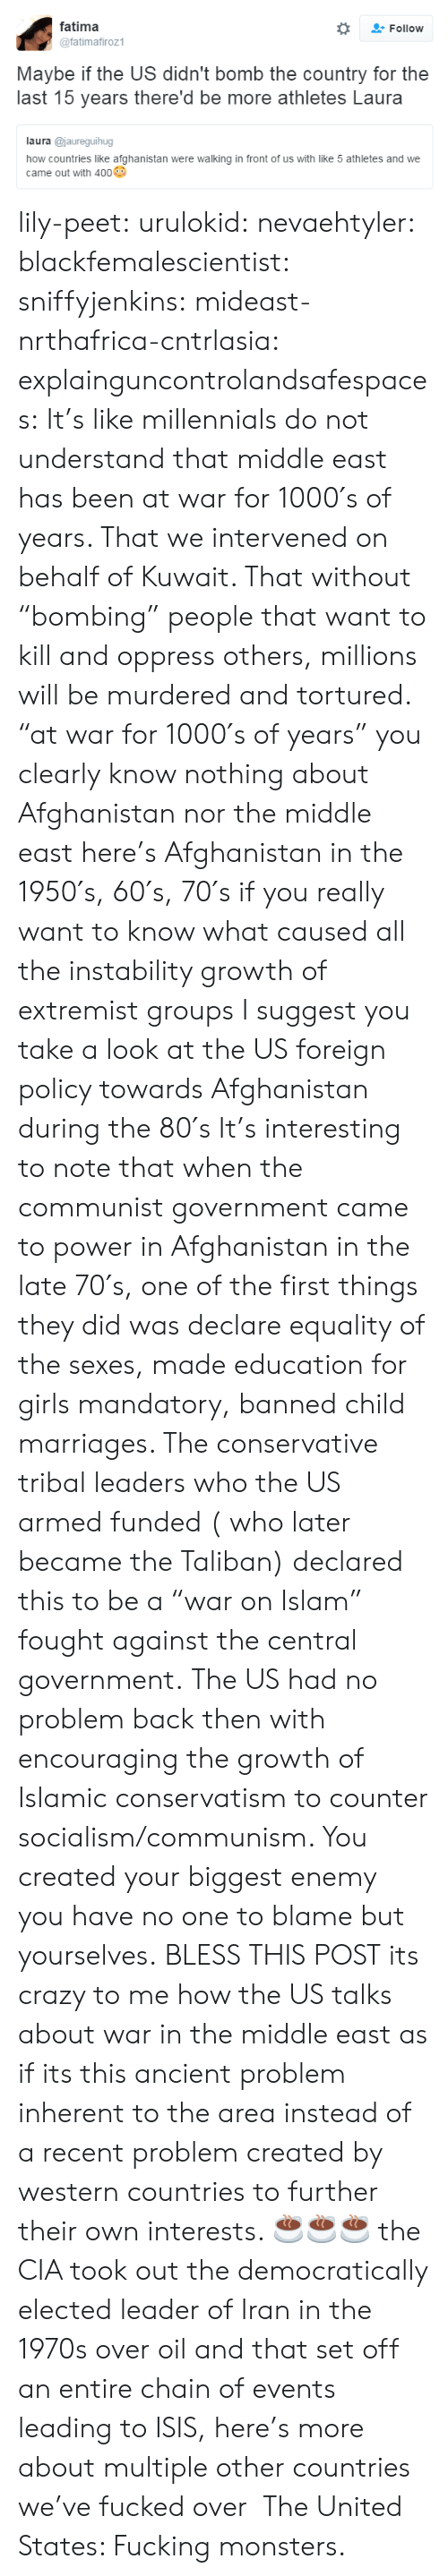 """mandatory: fatima  @fatimafiroz1  Follow  Maybe if the US didn't bomb the country for the  last 15 years there'd be more athletes Laura  laura @jaureguihug  how countries like afghanistan were walking in front of us with like 5 athletes and we  came out with 400 lily-peet:  urulokid:  nevaehtyler:  blackfemalescientist:  sniffyjenkins:  mideast-nrthafrica-cntrlasia:  explainguncontrolandsafespaces:  It's like millennials do not understand that middle east has been at war for 1000′s of years. That we intervened on behalf of Kuwait. That without """"bombing"""" people that want to kill and oppress others, millions will be murdered and tortured.  """"at war for 1000′s of years"""" you clearly know nothing about Afghanistan nor the middle east here's Afghanistan in the 1950′s, 60′s,  70′s if you really want to know what caused all the instability  growth of extremist groups I suggest you take a look at the US foreign policy towards Afghanistan during the 80′s It's interesting to note that when the communist government came to power in Afghanistan in the late 70′s, one of the first things they did was declare equality of the sexes, made education for girls mandatory,  banned child marriages. The conservative tribal leaders who the US armed  funded ( who later became the Taliban) declared this to be a """"war on Islam""""  fought against the central government. The US had no problem back then with encouraging the growth of Islamic conservatism to counter socialism/communism. You created your biggest enemy  you have no one to blame but yourselves.  BLESS THIS POST  its crazy to me how the US talks about war in the middle east as if its this ancient problem inherent to the area instead of a recent problem created by western countries to further their own interests.   ☕️☕️☕️  the CIA took out the democratically elected leader of Iran in the 1970s over oil and that set off an entire chain of events leading to ISIS, here's more about multiple other countries we've fucked over  The United States"""